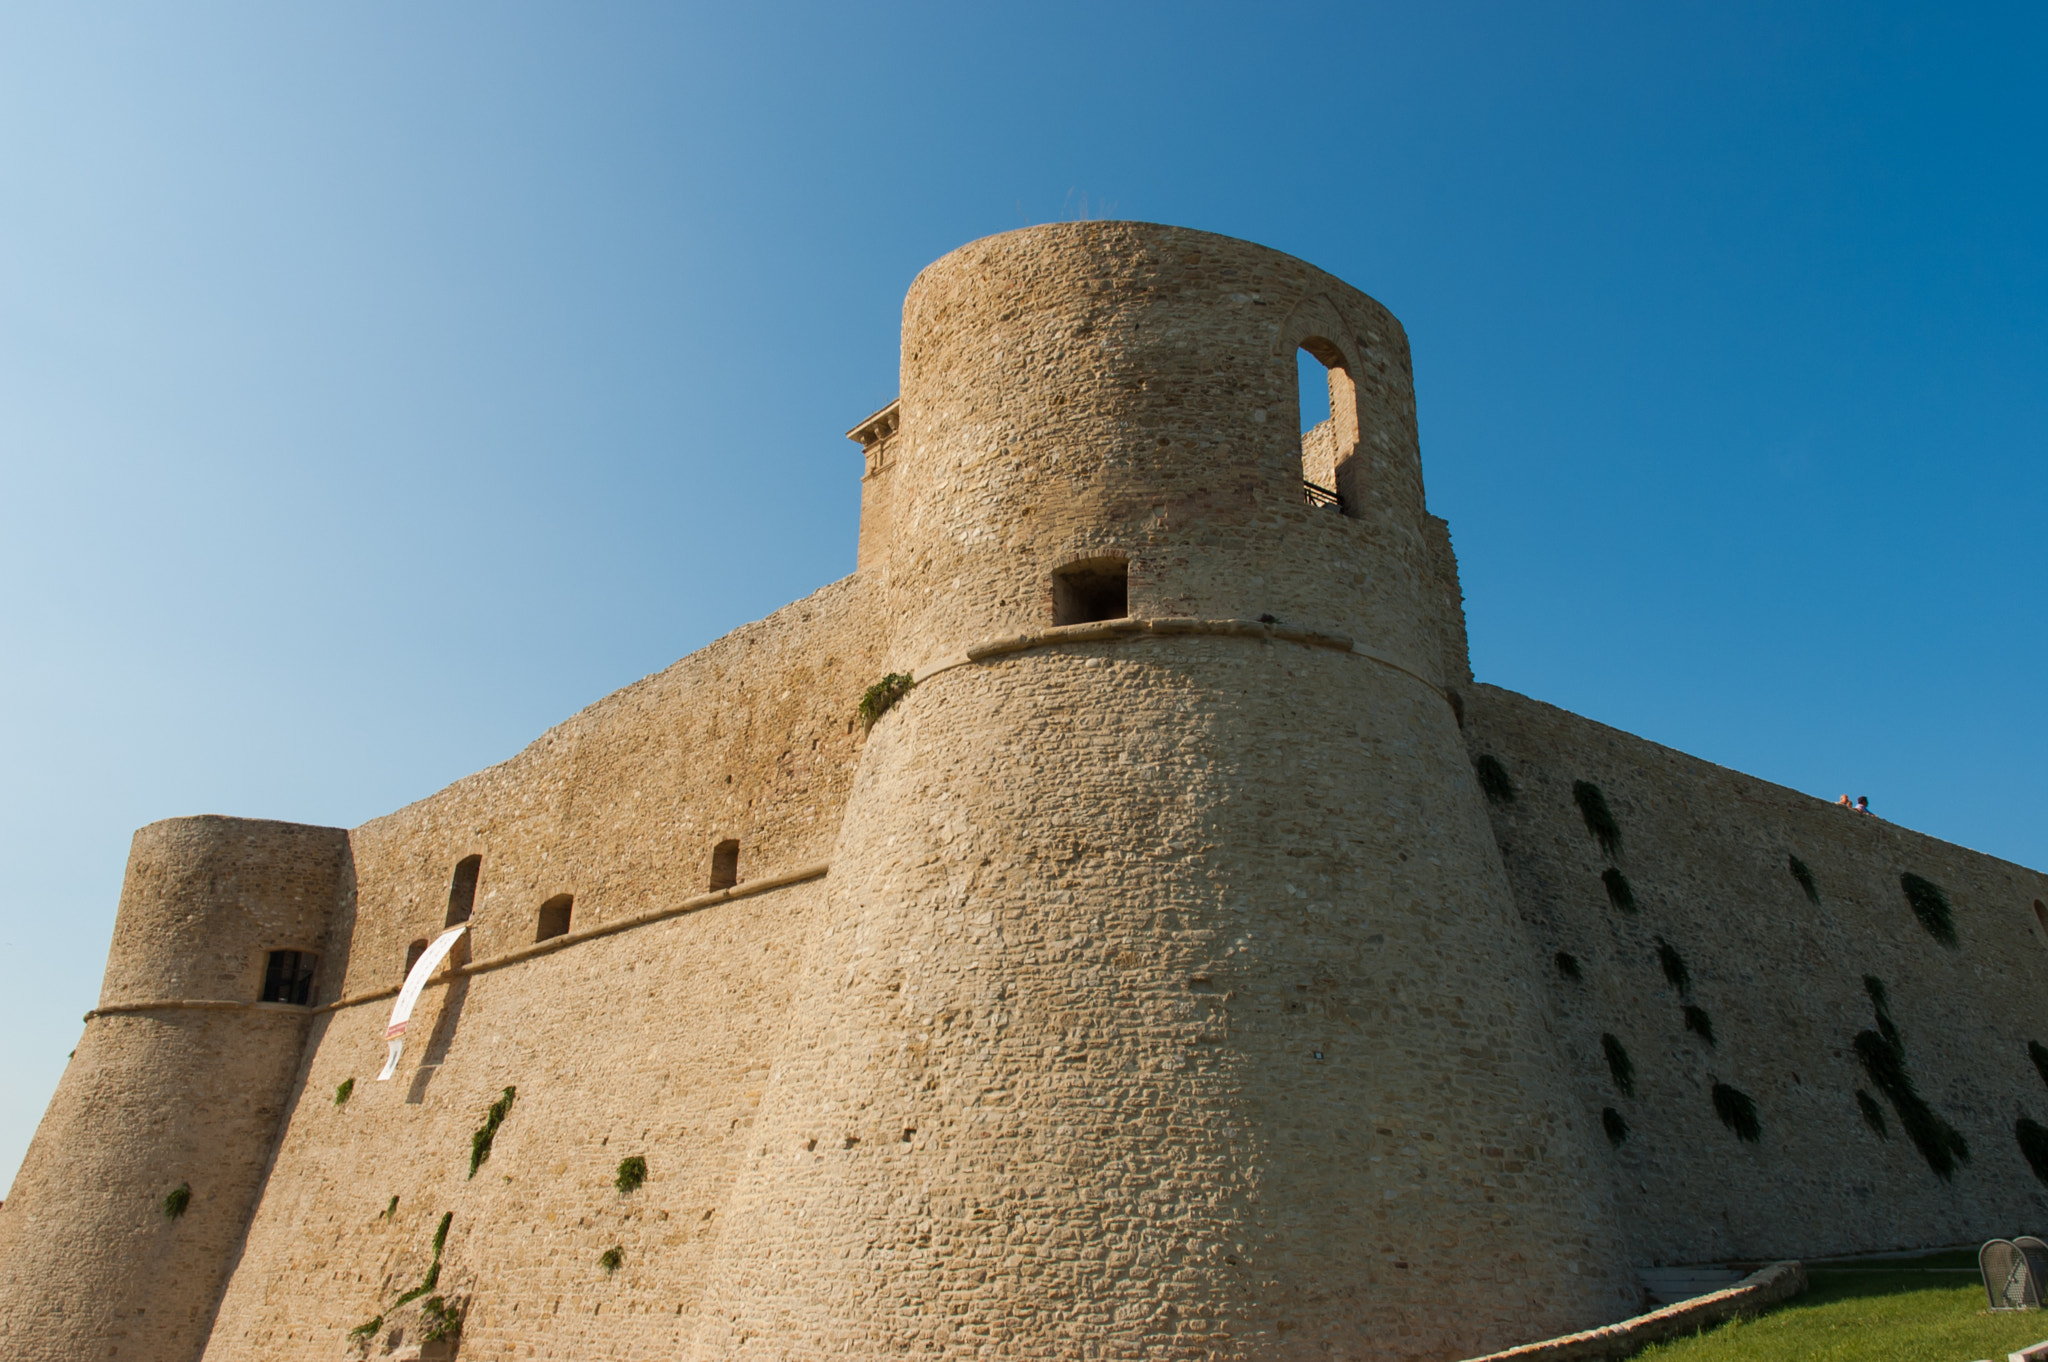 Photograph The aragonian castle by Andrea Mazzocchetti on 500px